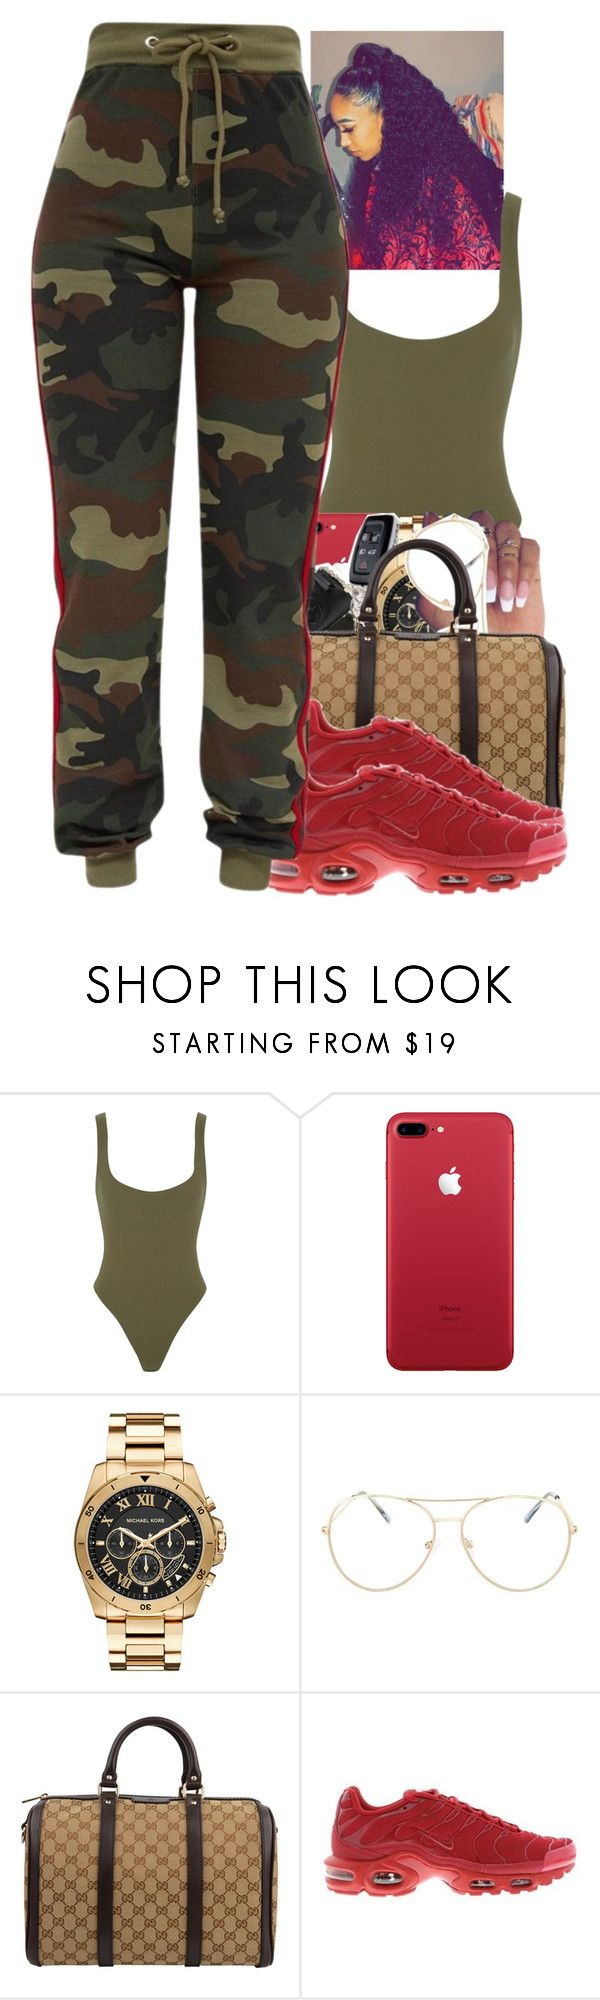 Untitled #2297 by txoni on Polyvore featuring Alix, Gucci, Michael Kors, Topshop and NIKE